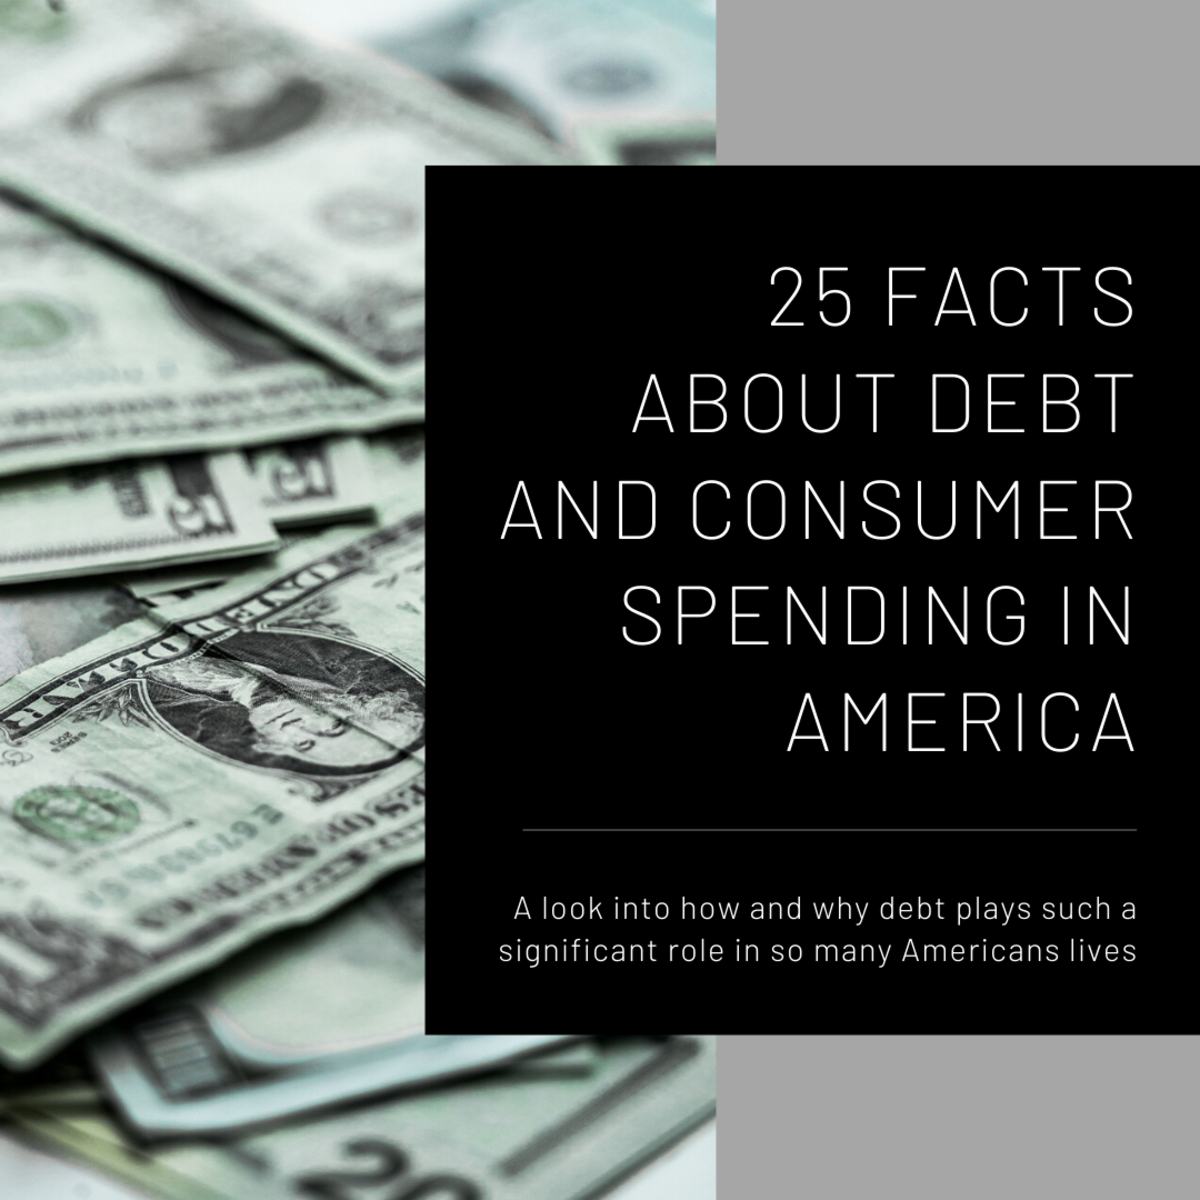 This article will take a look at 25 facts that examine the state of consumer spending and debt in the U.S.